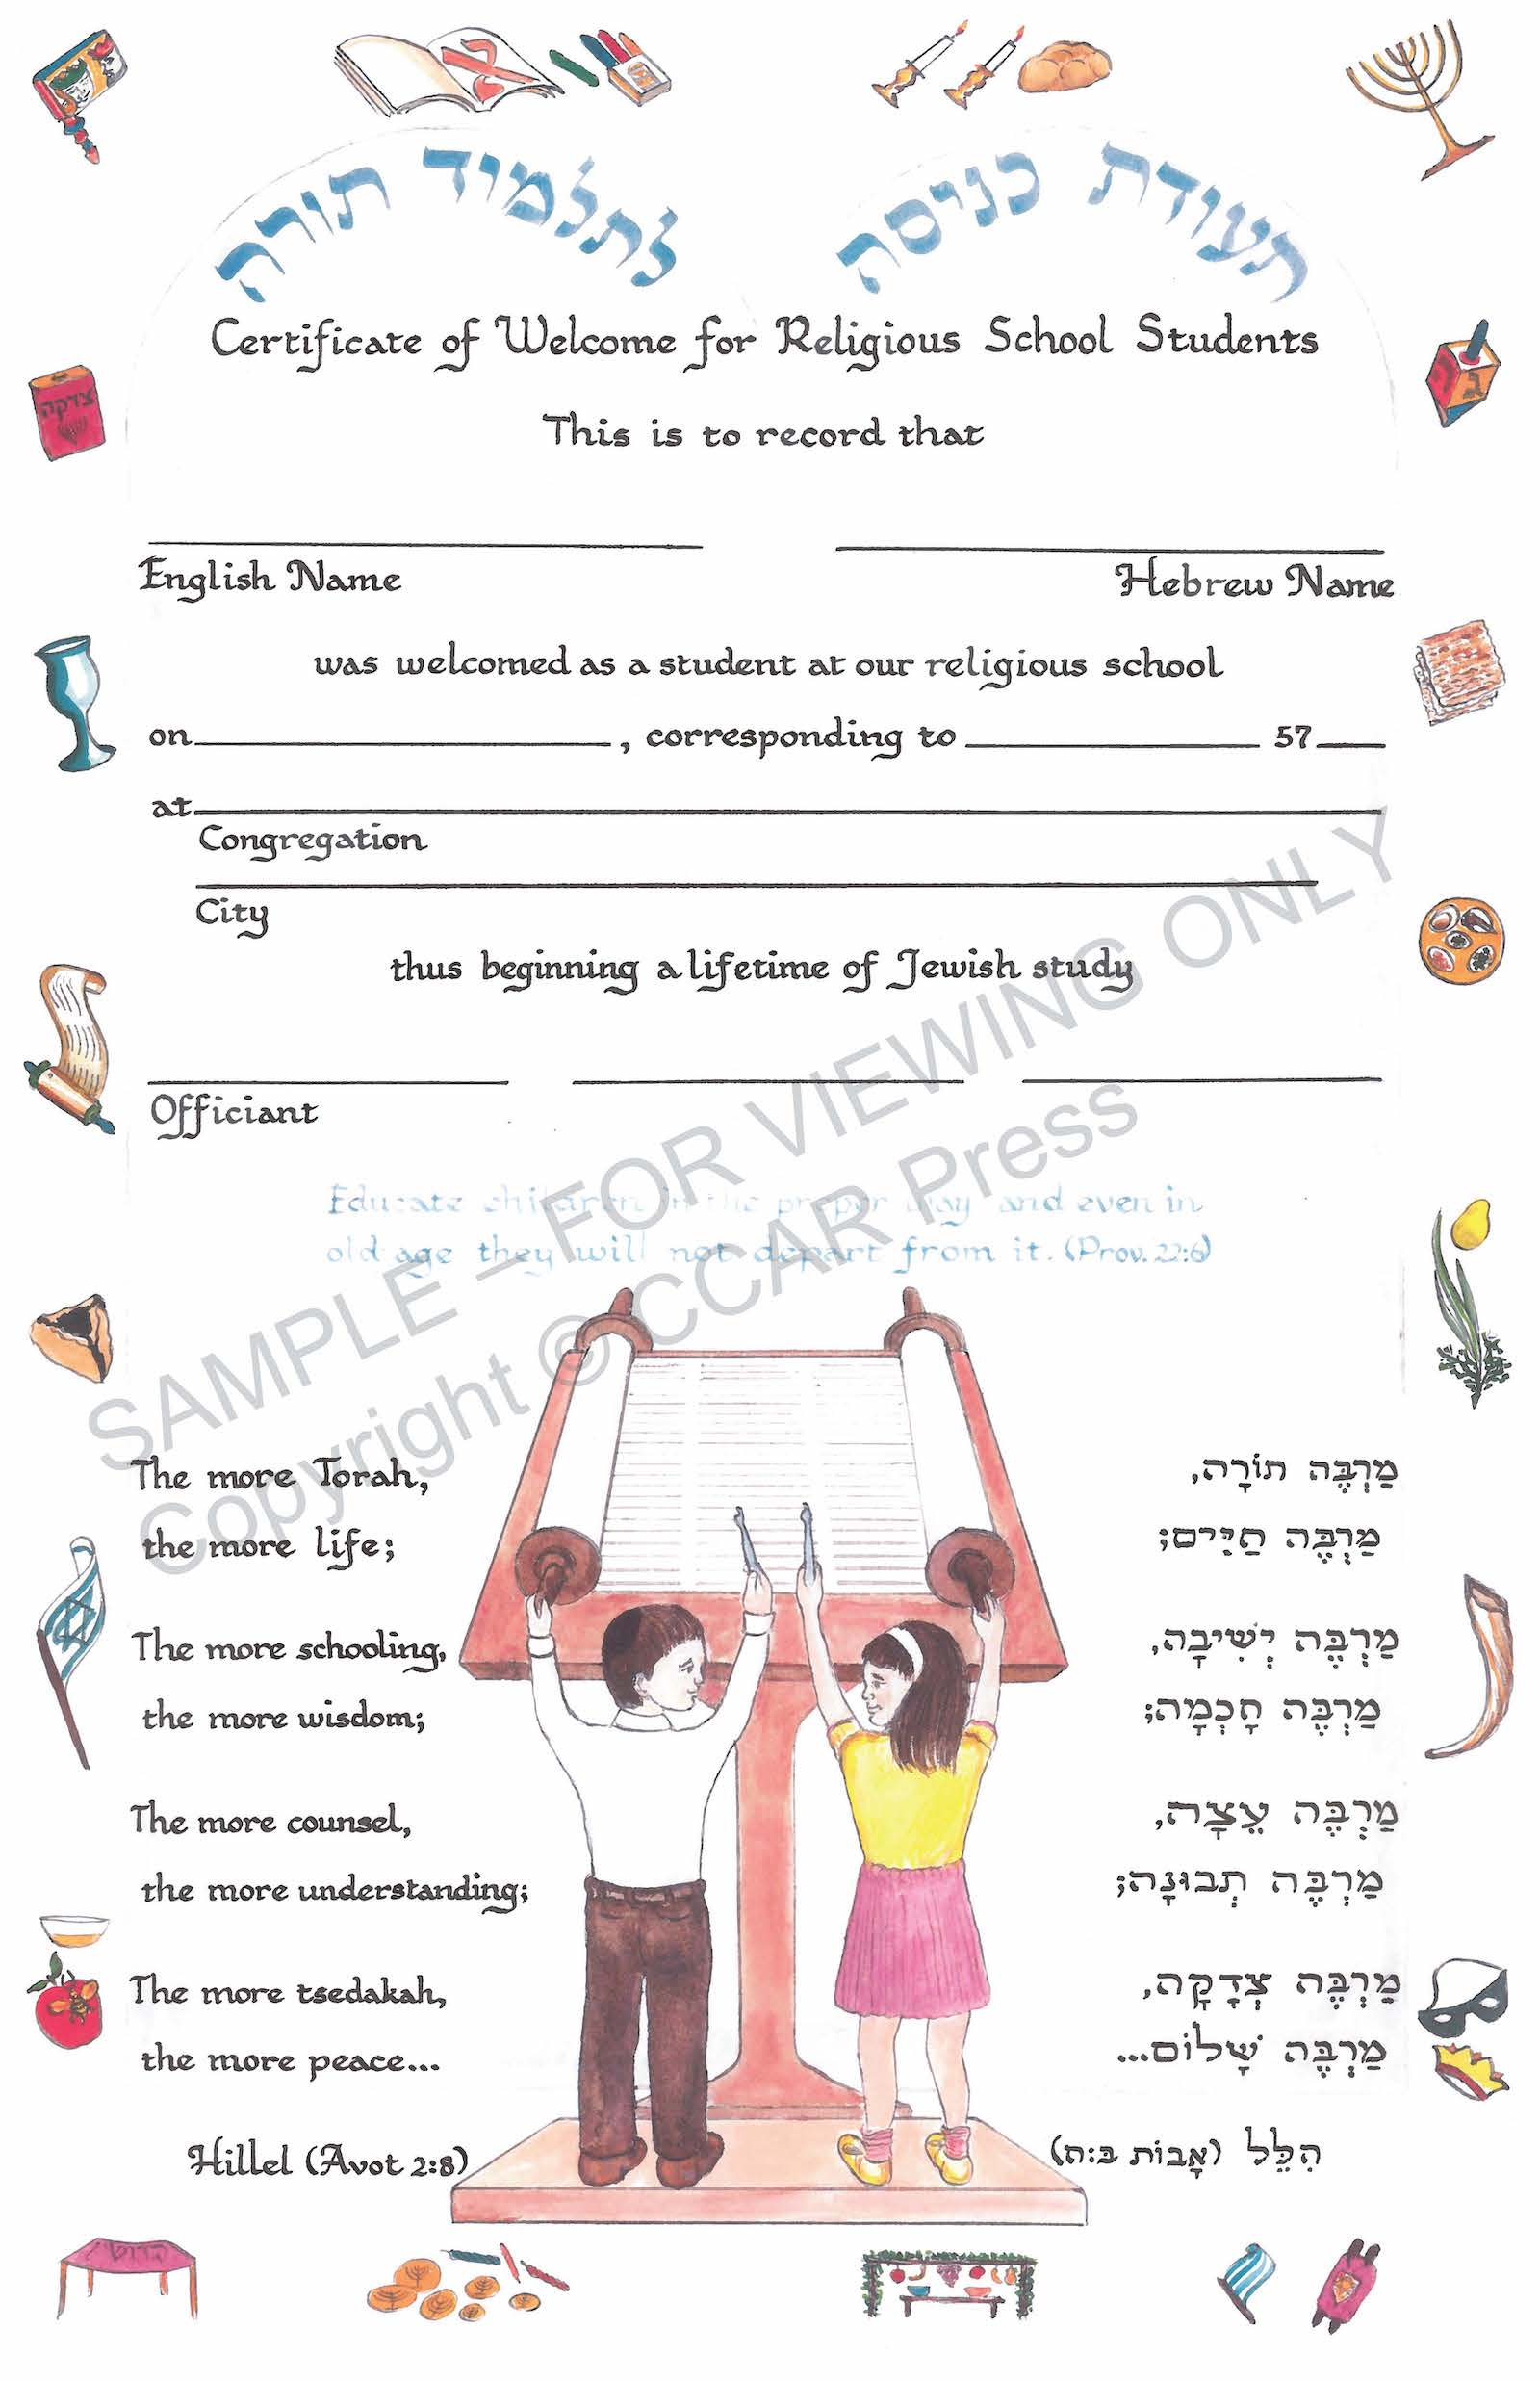 Welcome for Religious School - Certificate